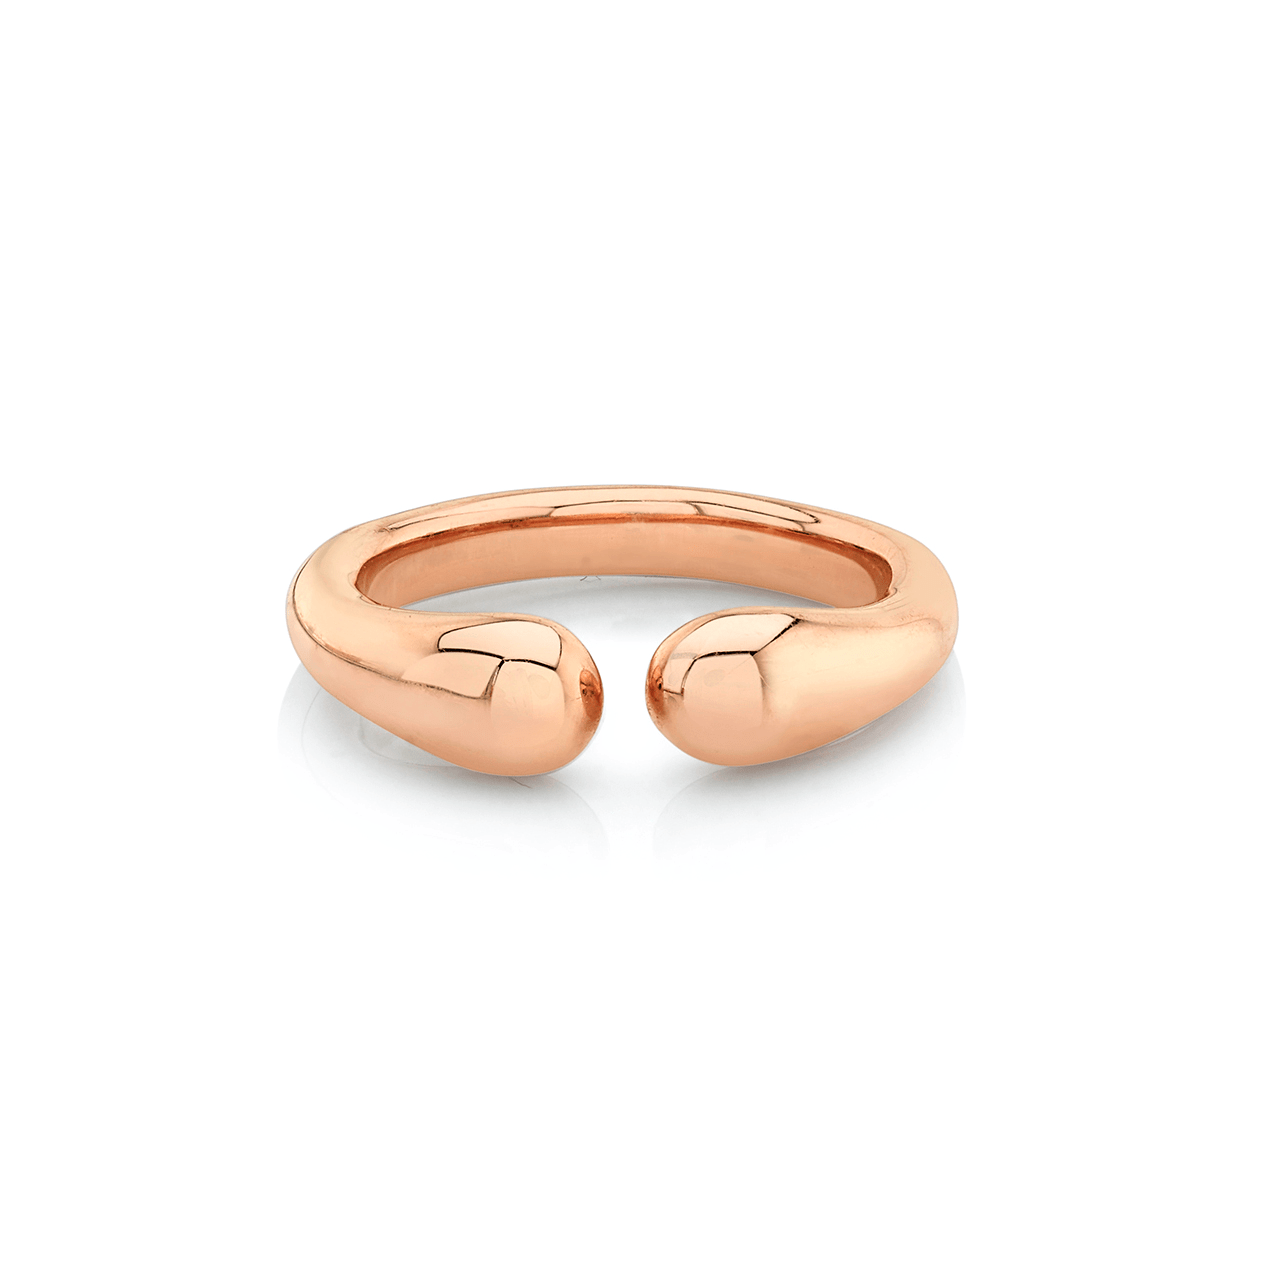 NEW! Solid Baby Elixir of Life Ring